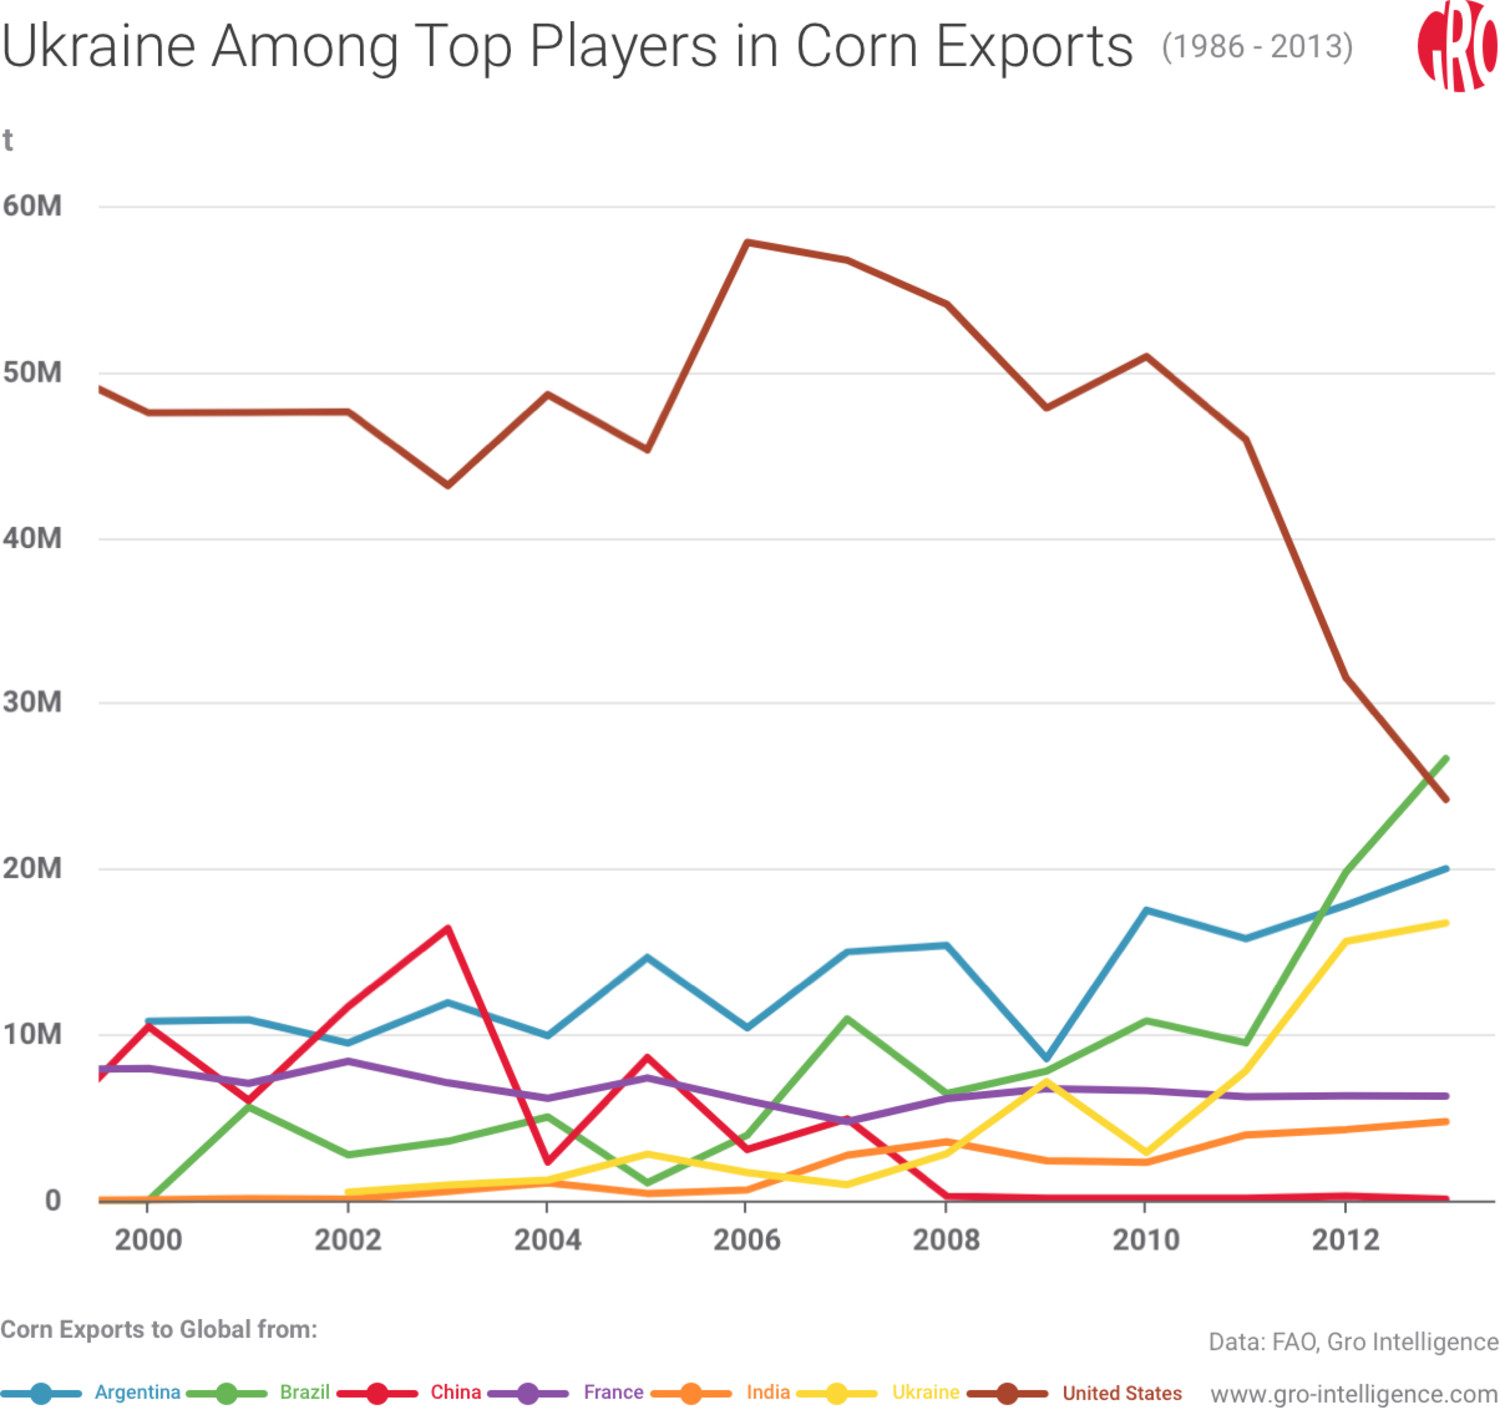 Ukraine Among Top Players in Corn Exports